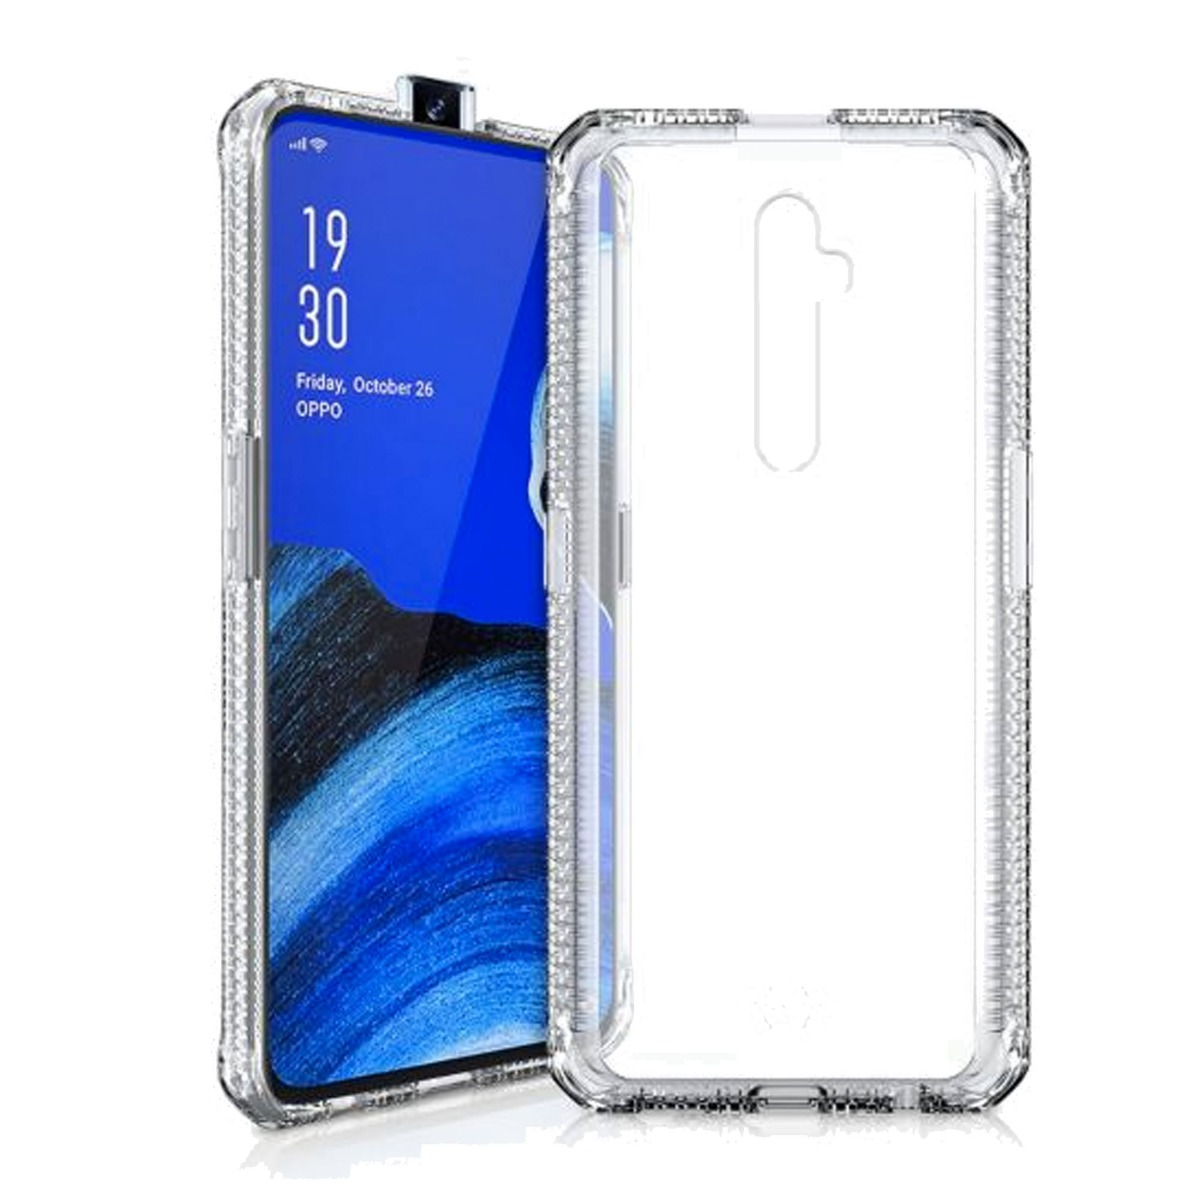 Itskins Hybrid Clear 2M/6.6 Ft Laboratory Drop Certified for OPPO Reno 2 Z Clear